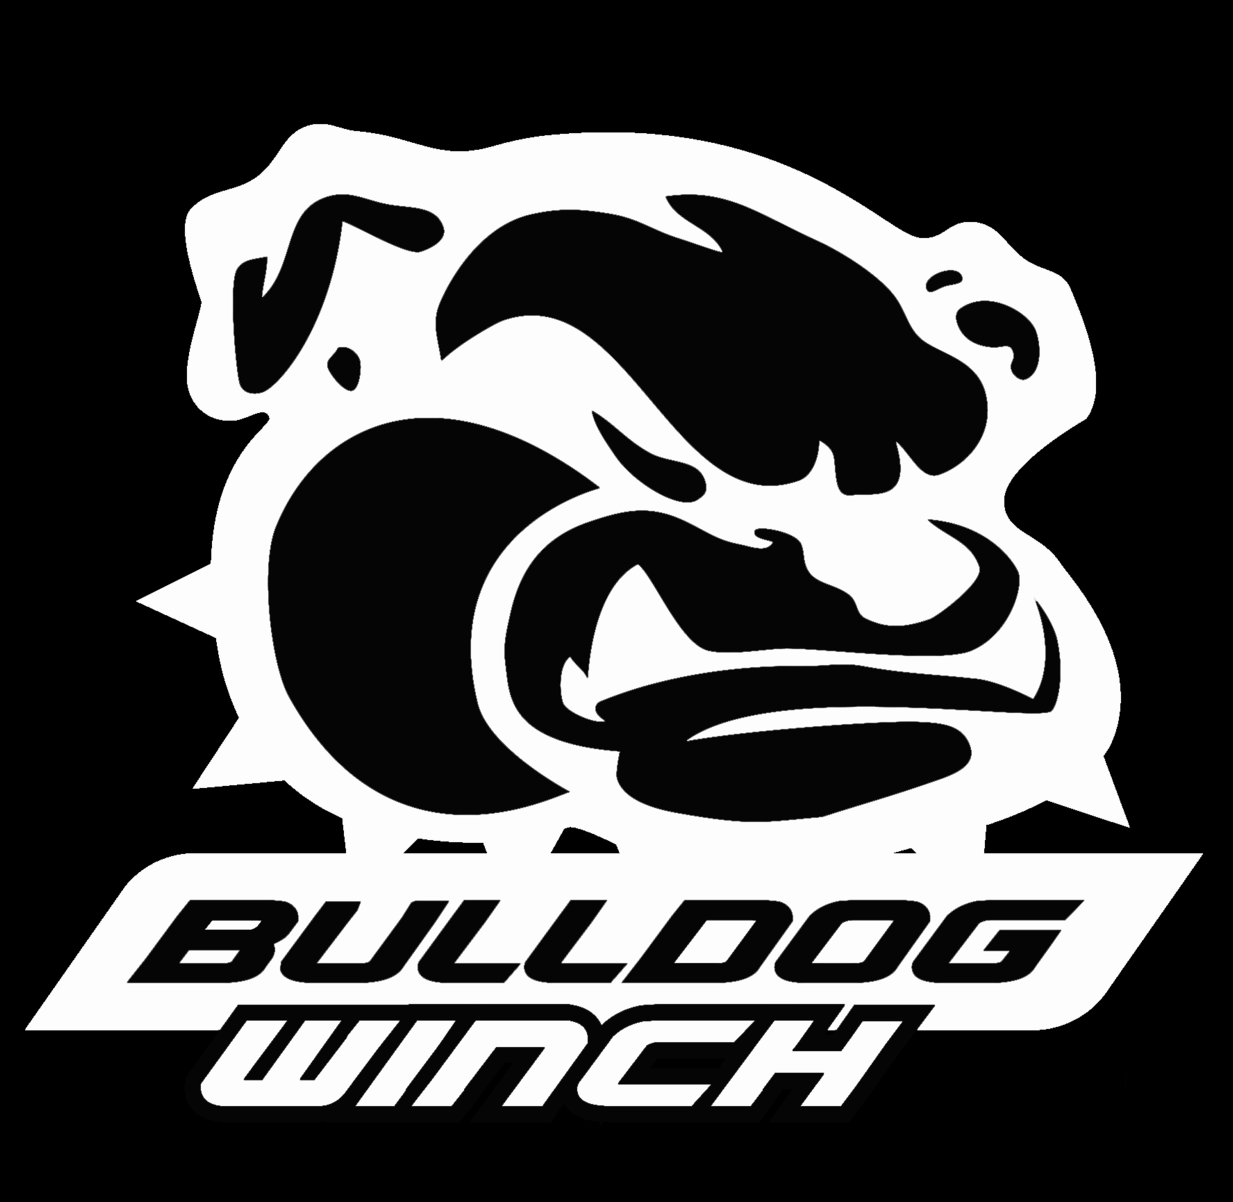 Bulldog Winch Co LLC was founded in 2006 by Bob Horn. Bob and the Bulldog Team are enthusiasts and love what they do. They're always trying to solve problems or create the next widget but deep down they love what they do. We hope that shows up in the products we're offering.